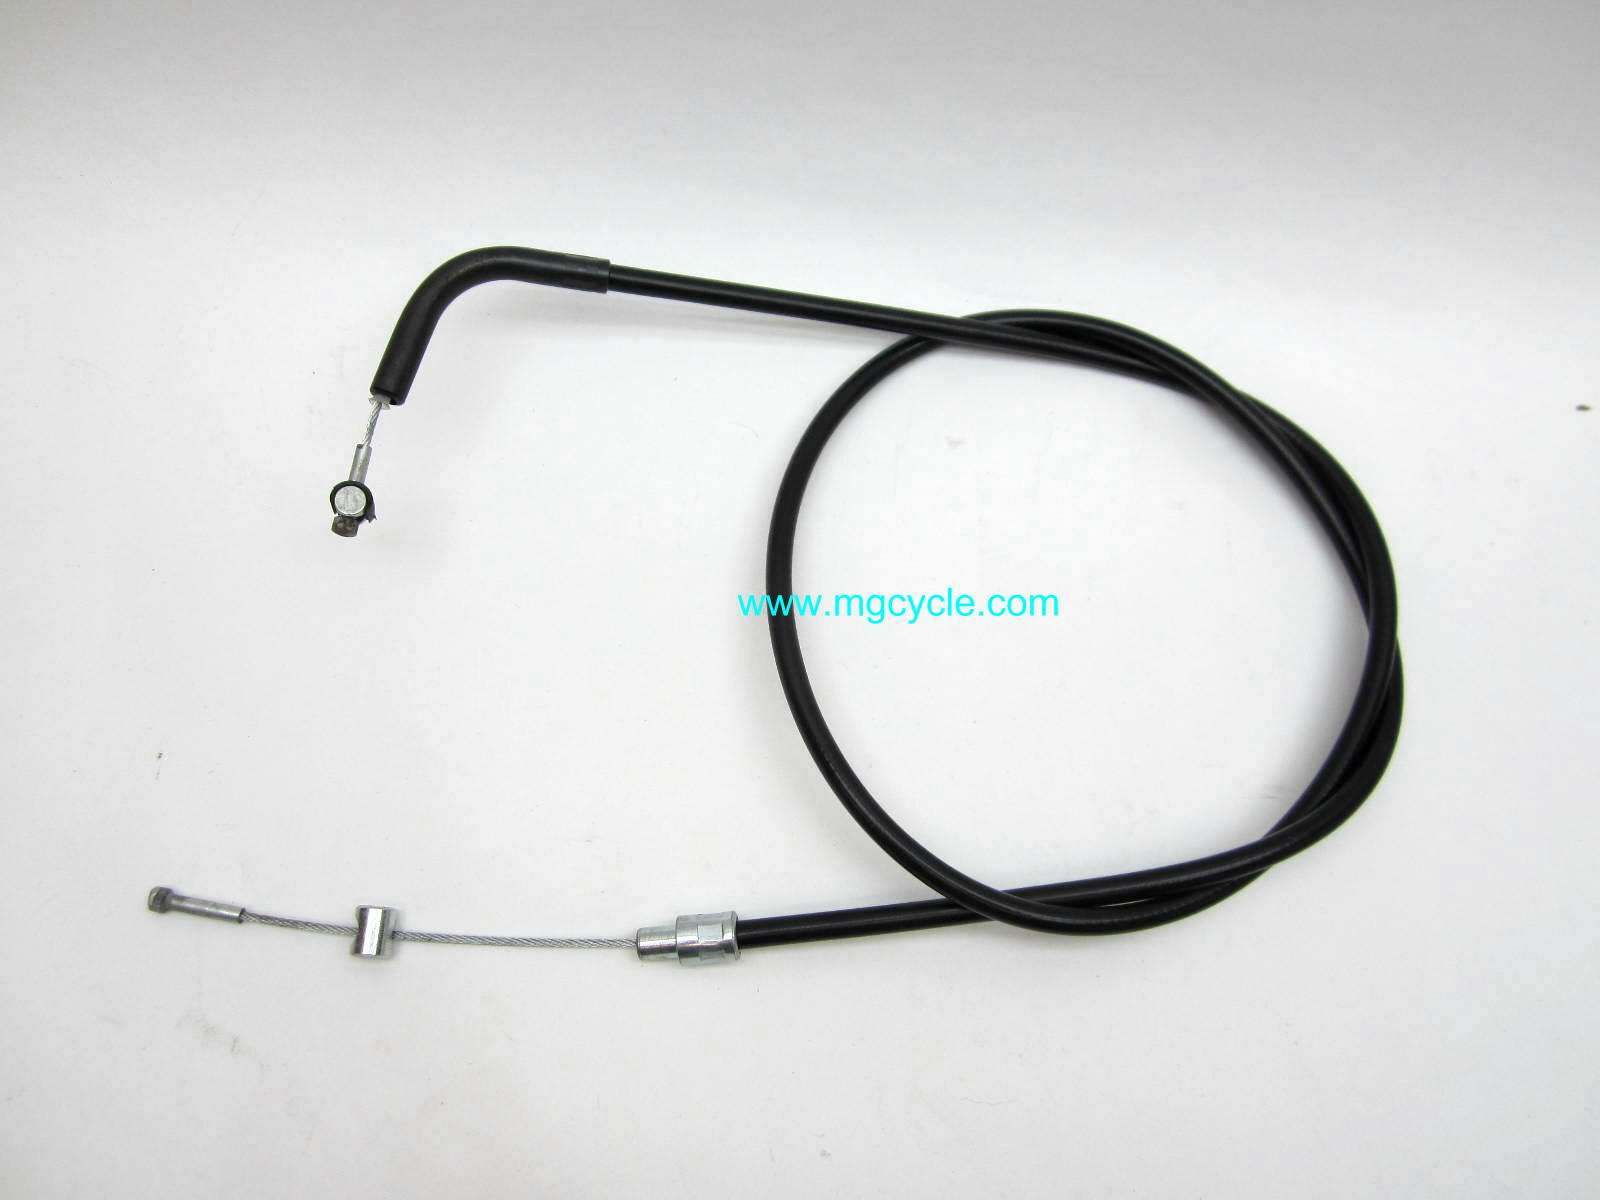 hight resolution of clutch cable breva 750 gu32093010